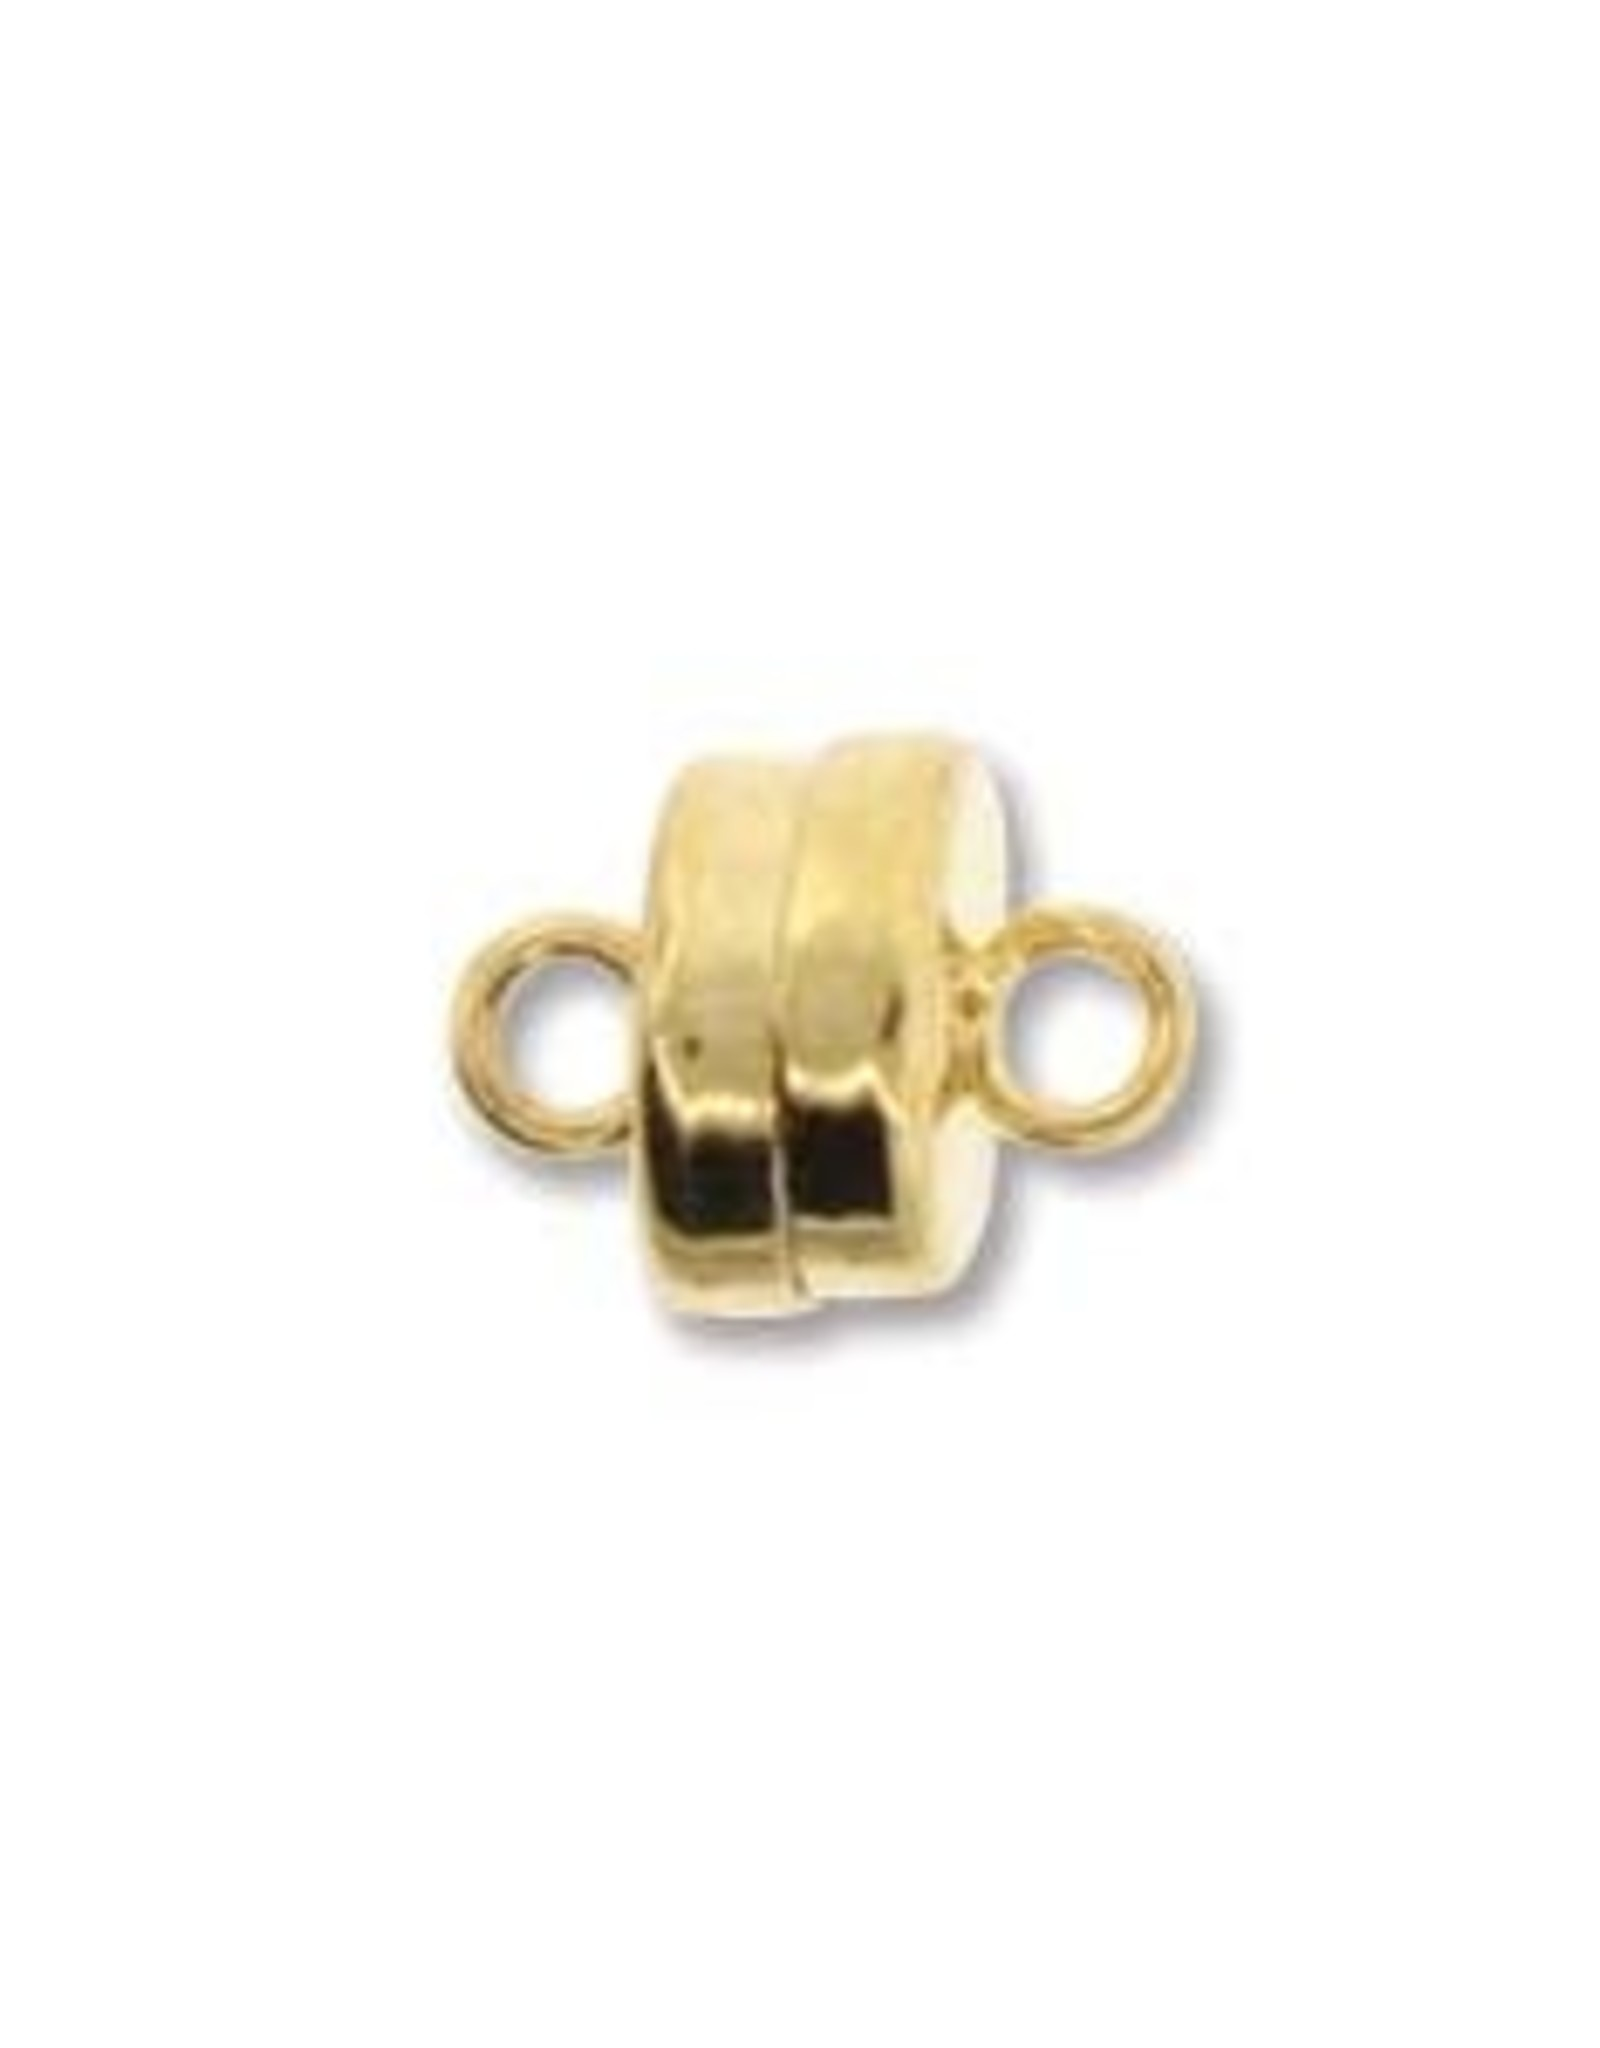 7mm Magnetic Clasp Gold Plate Qty 3